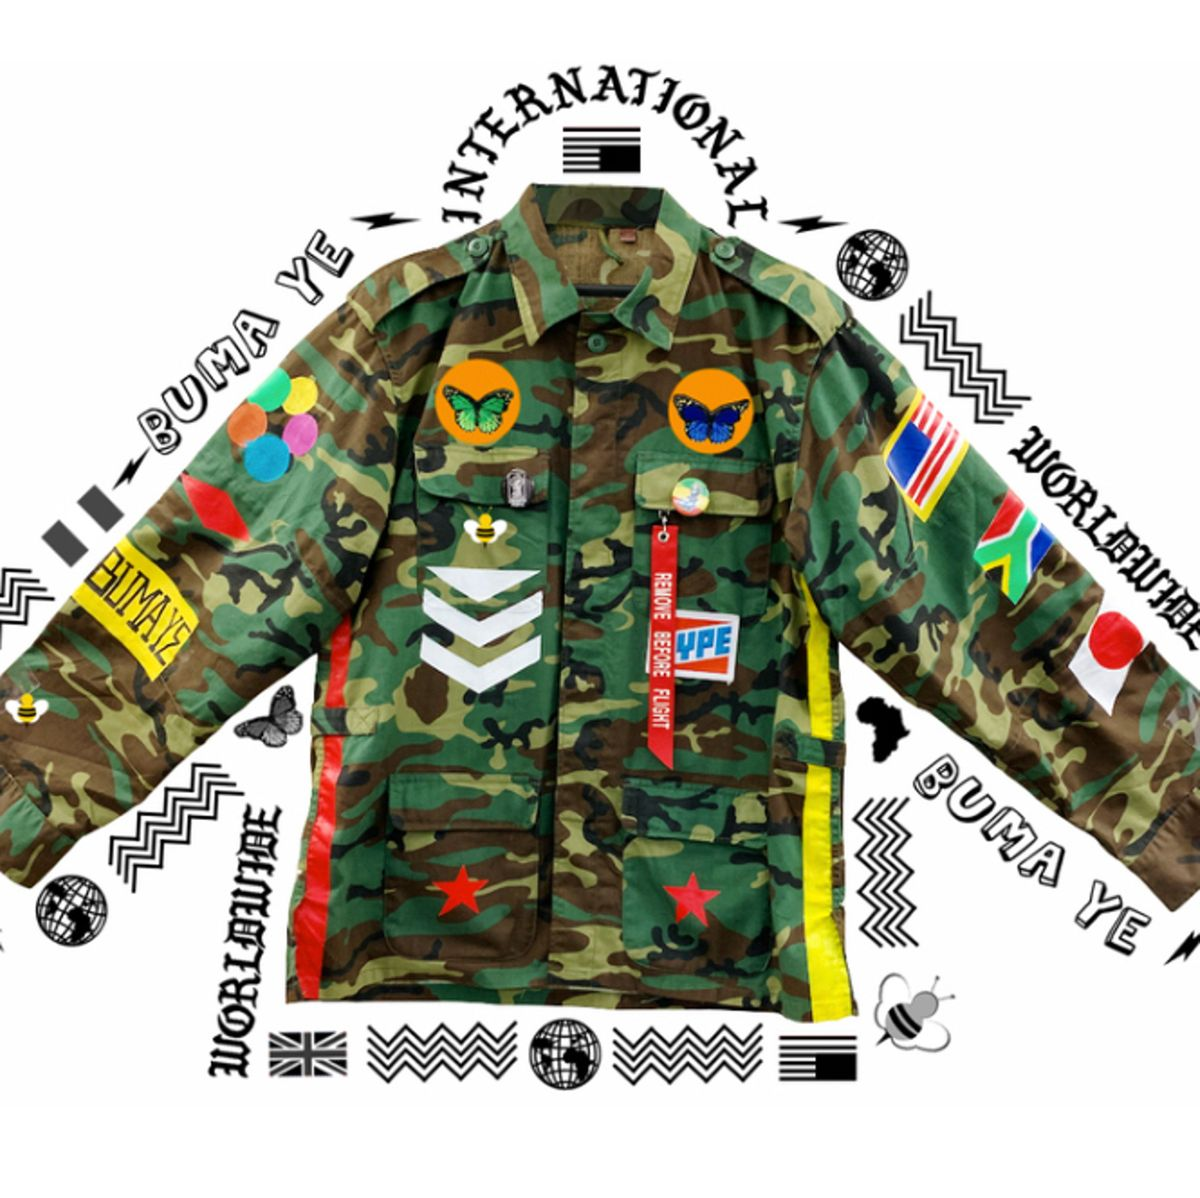 Muhammad Ali Vintage Military Jacket (Singapore) by Zeph Farmby, Dick Mac (3 of 4)